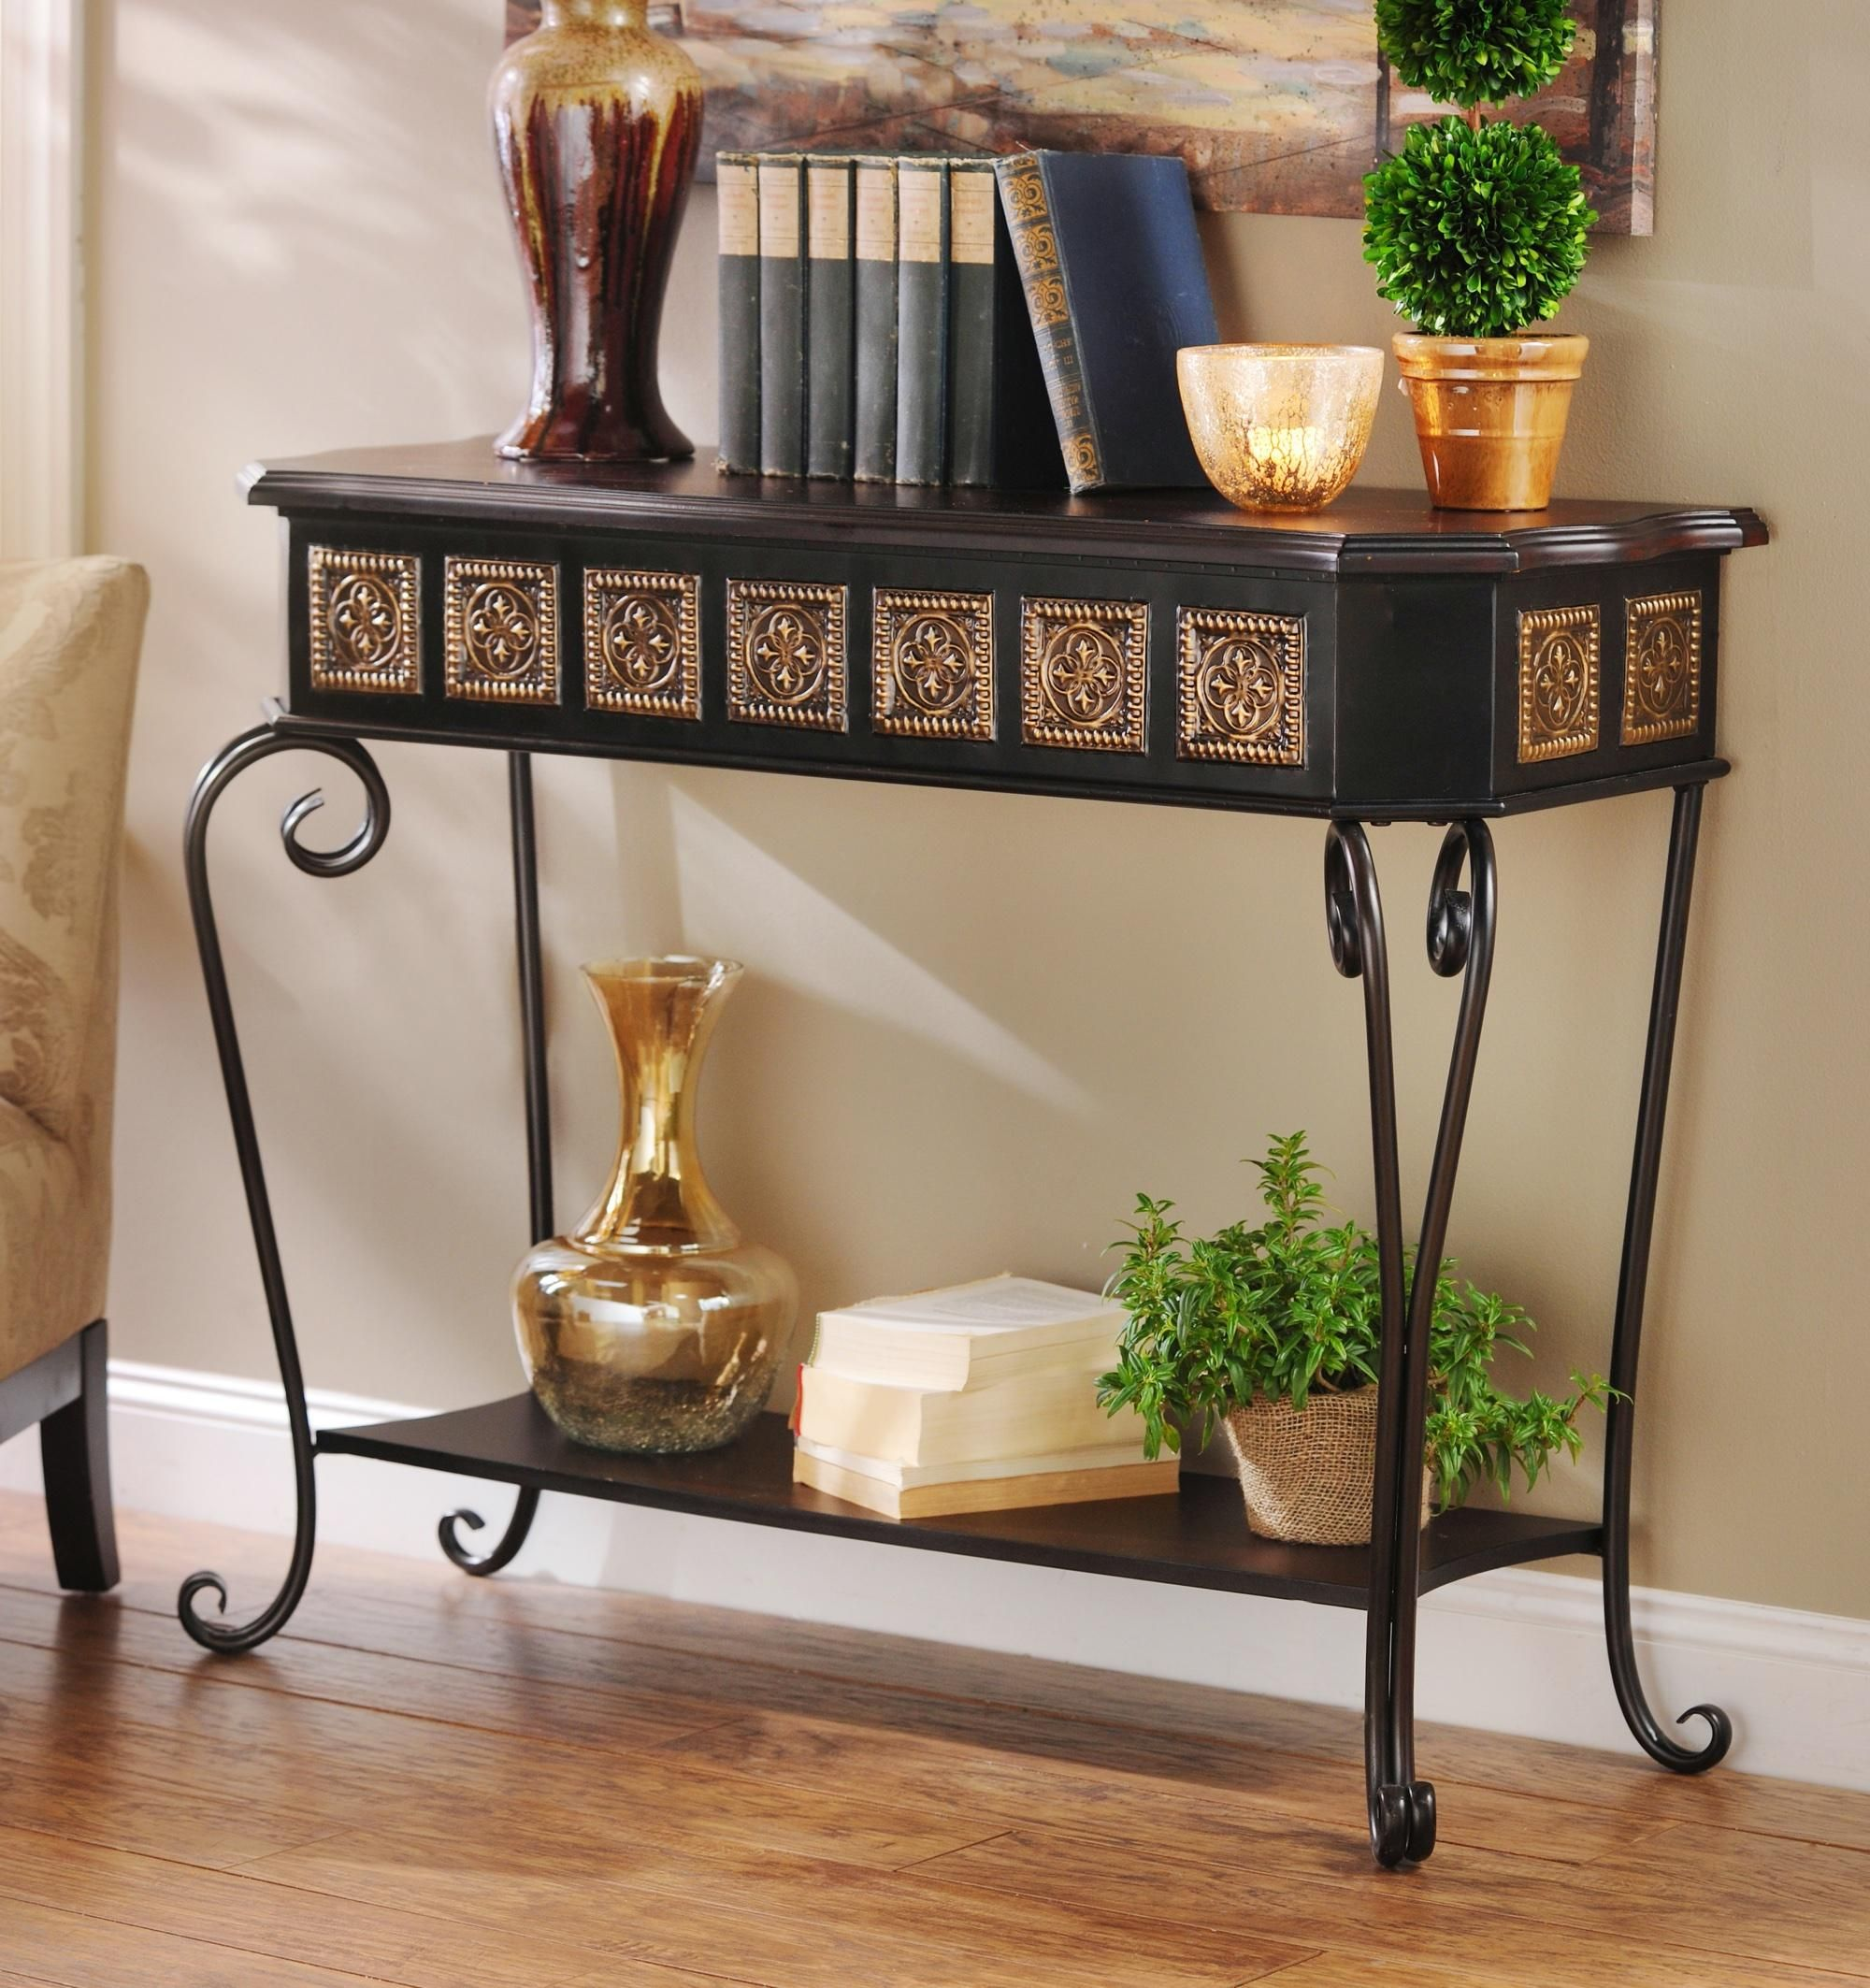 Hallway key storage  Medallion Console Table  More Console tables ideas